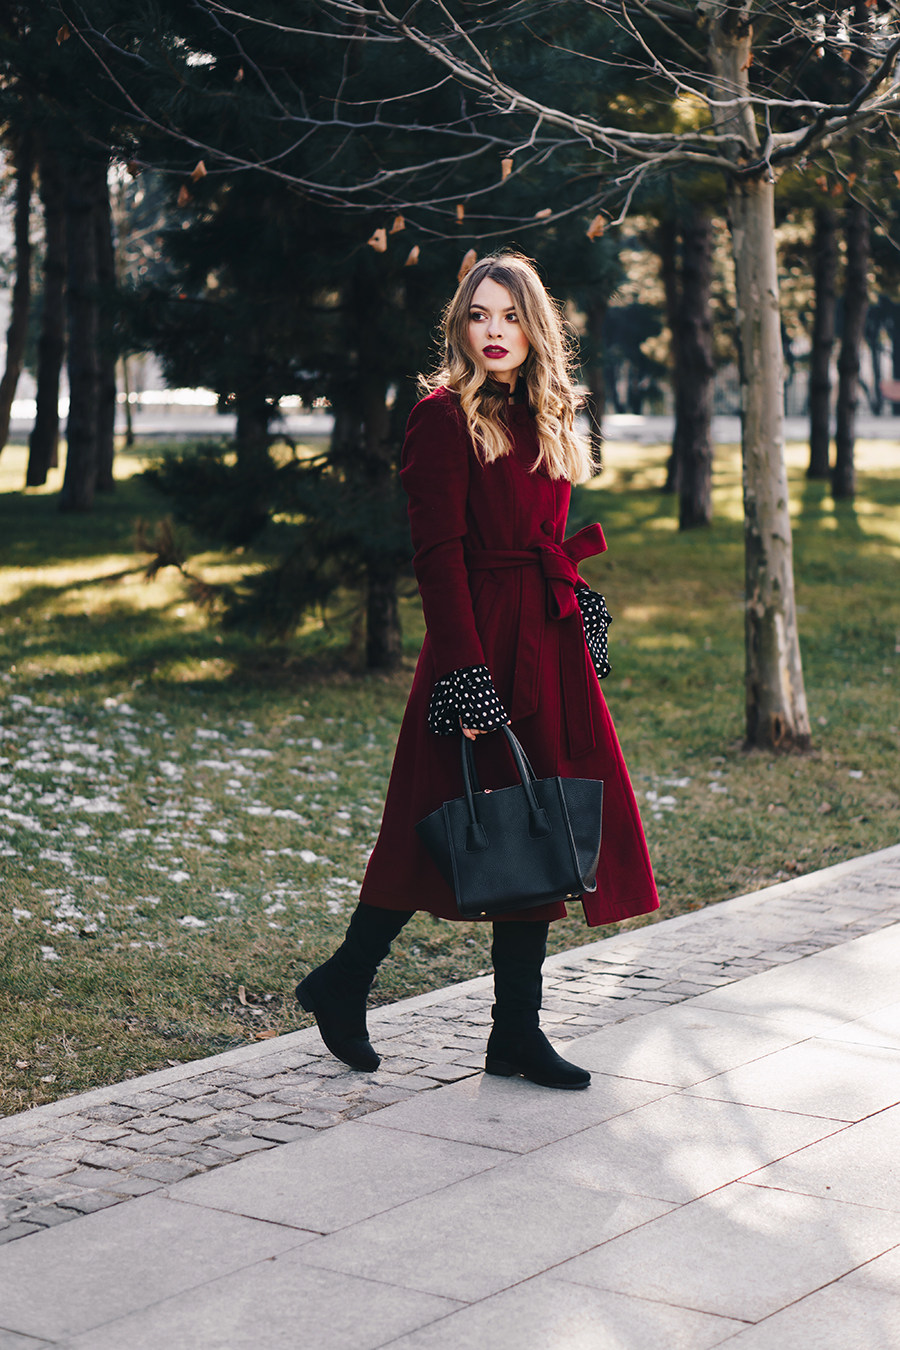 red-wool-coat-polka-dots-bell-sleeves-blouse-winter-outfit-4